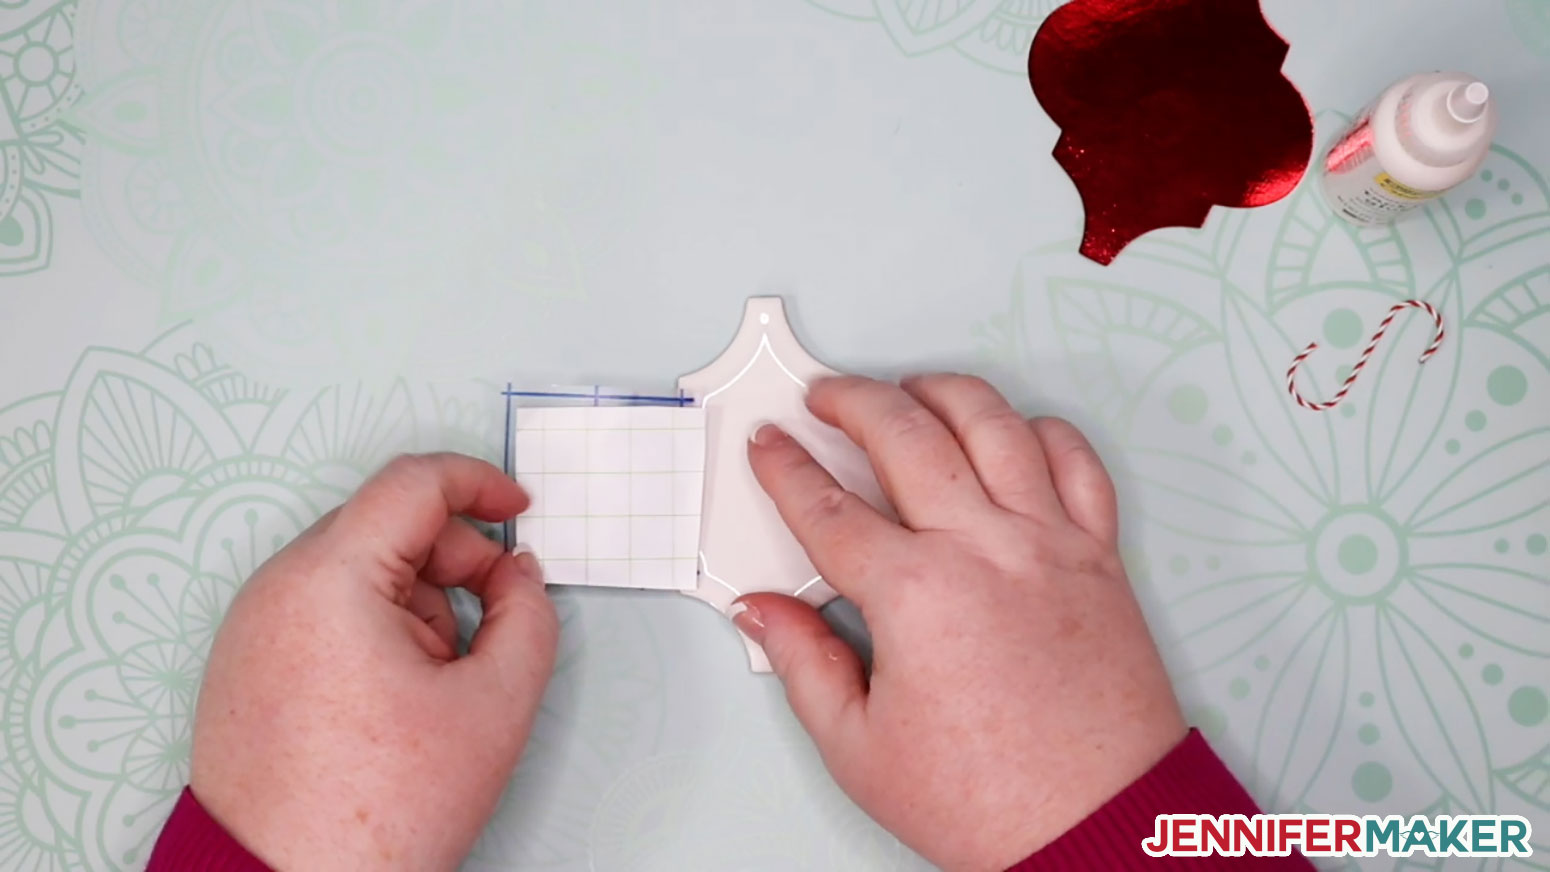 The hinge method of applying a vinyl decal to a surface with transfer tape